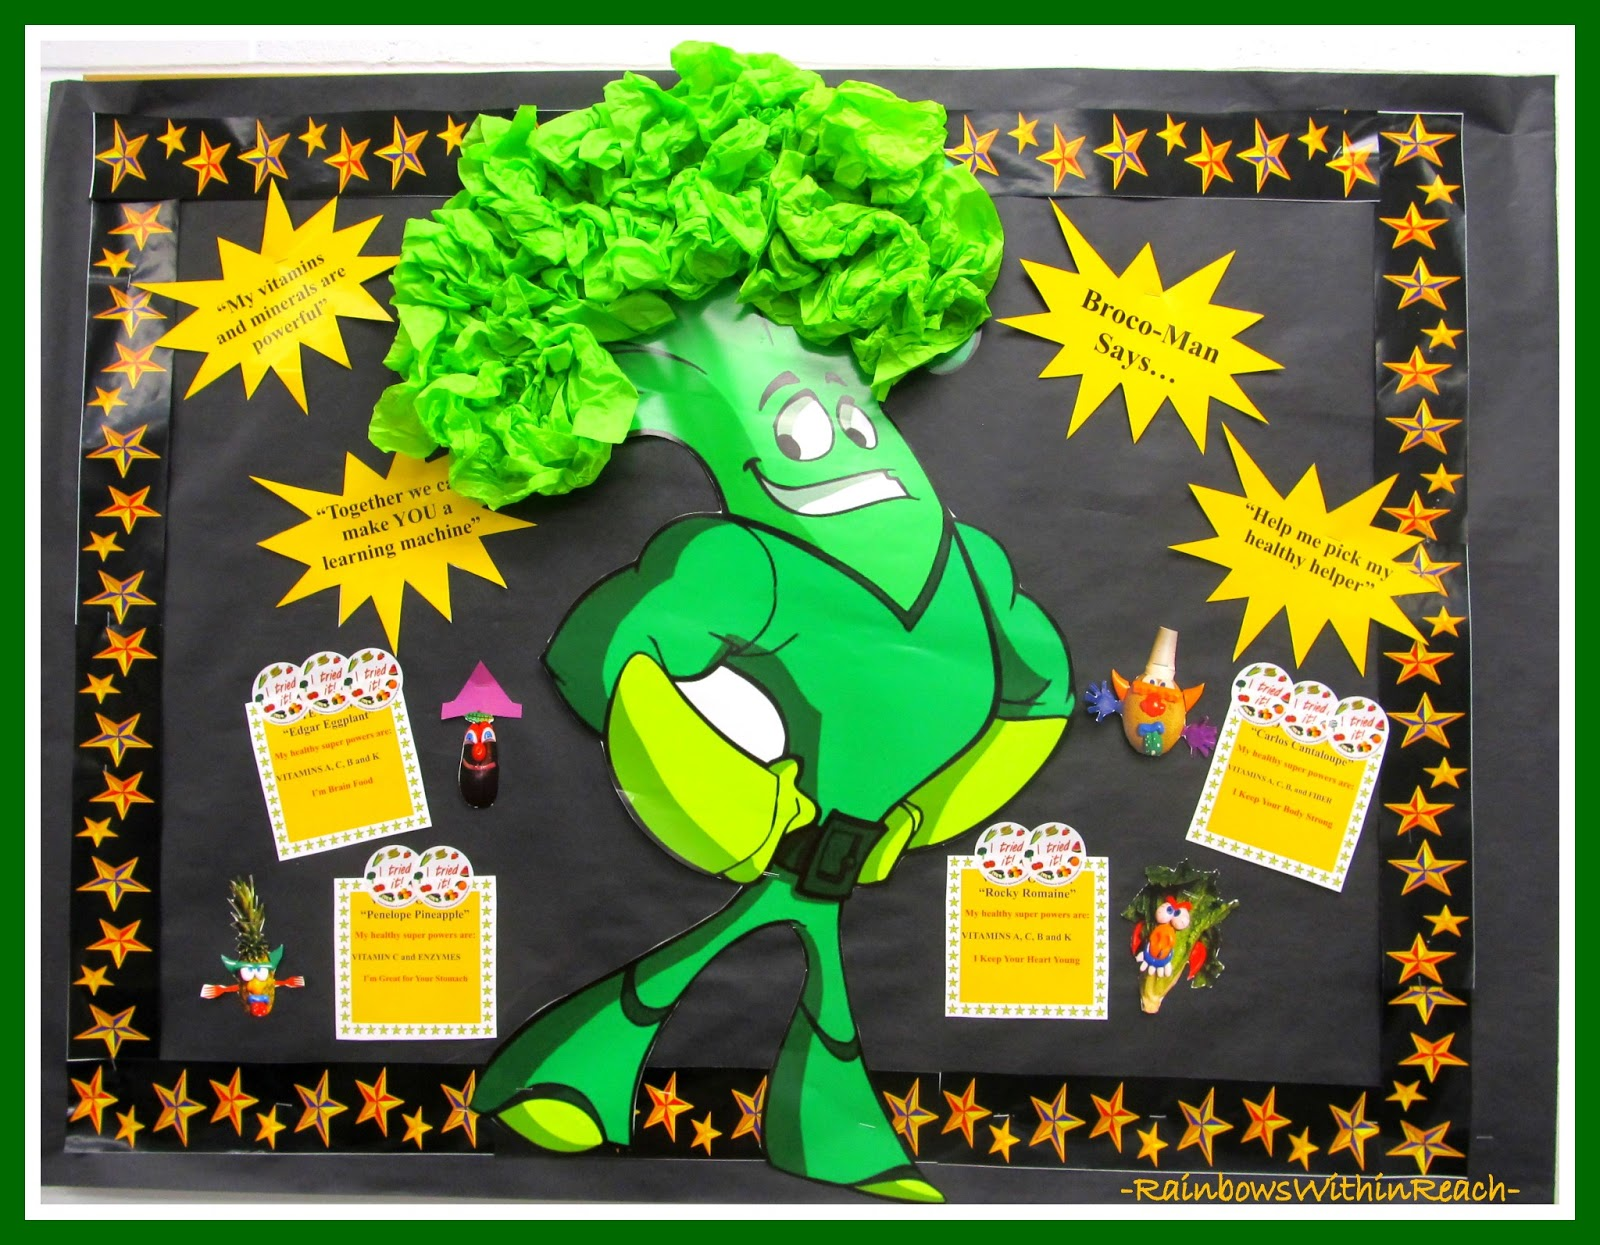 Art craft ideas and bulletin boards for elementary schools vegetable - Art Craft Ideas And Bulletin Boards For Elementary Schools Vegetable 50